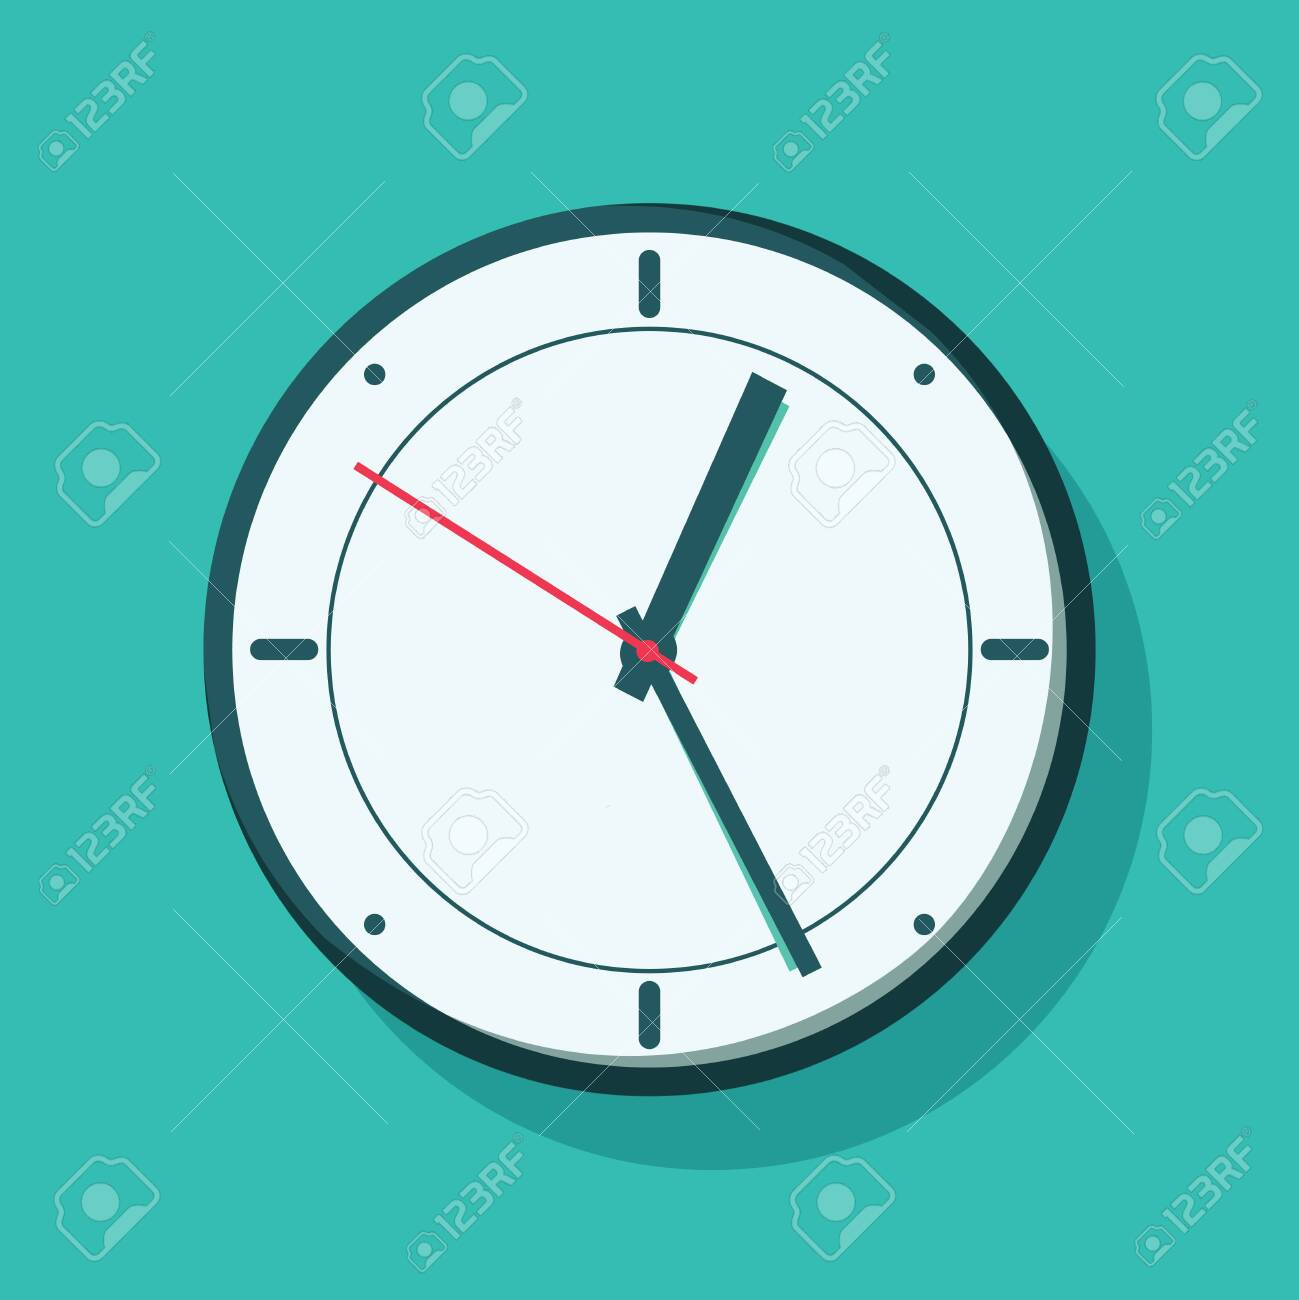 Clock hanging on wall. Vector illustration in flat style. Alarm or awake concept with clock on green background. - 132302557